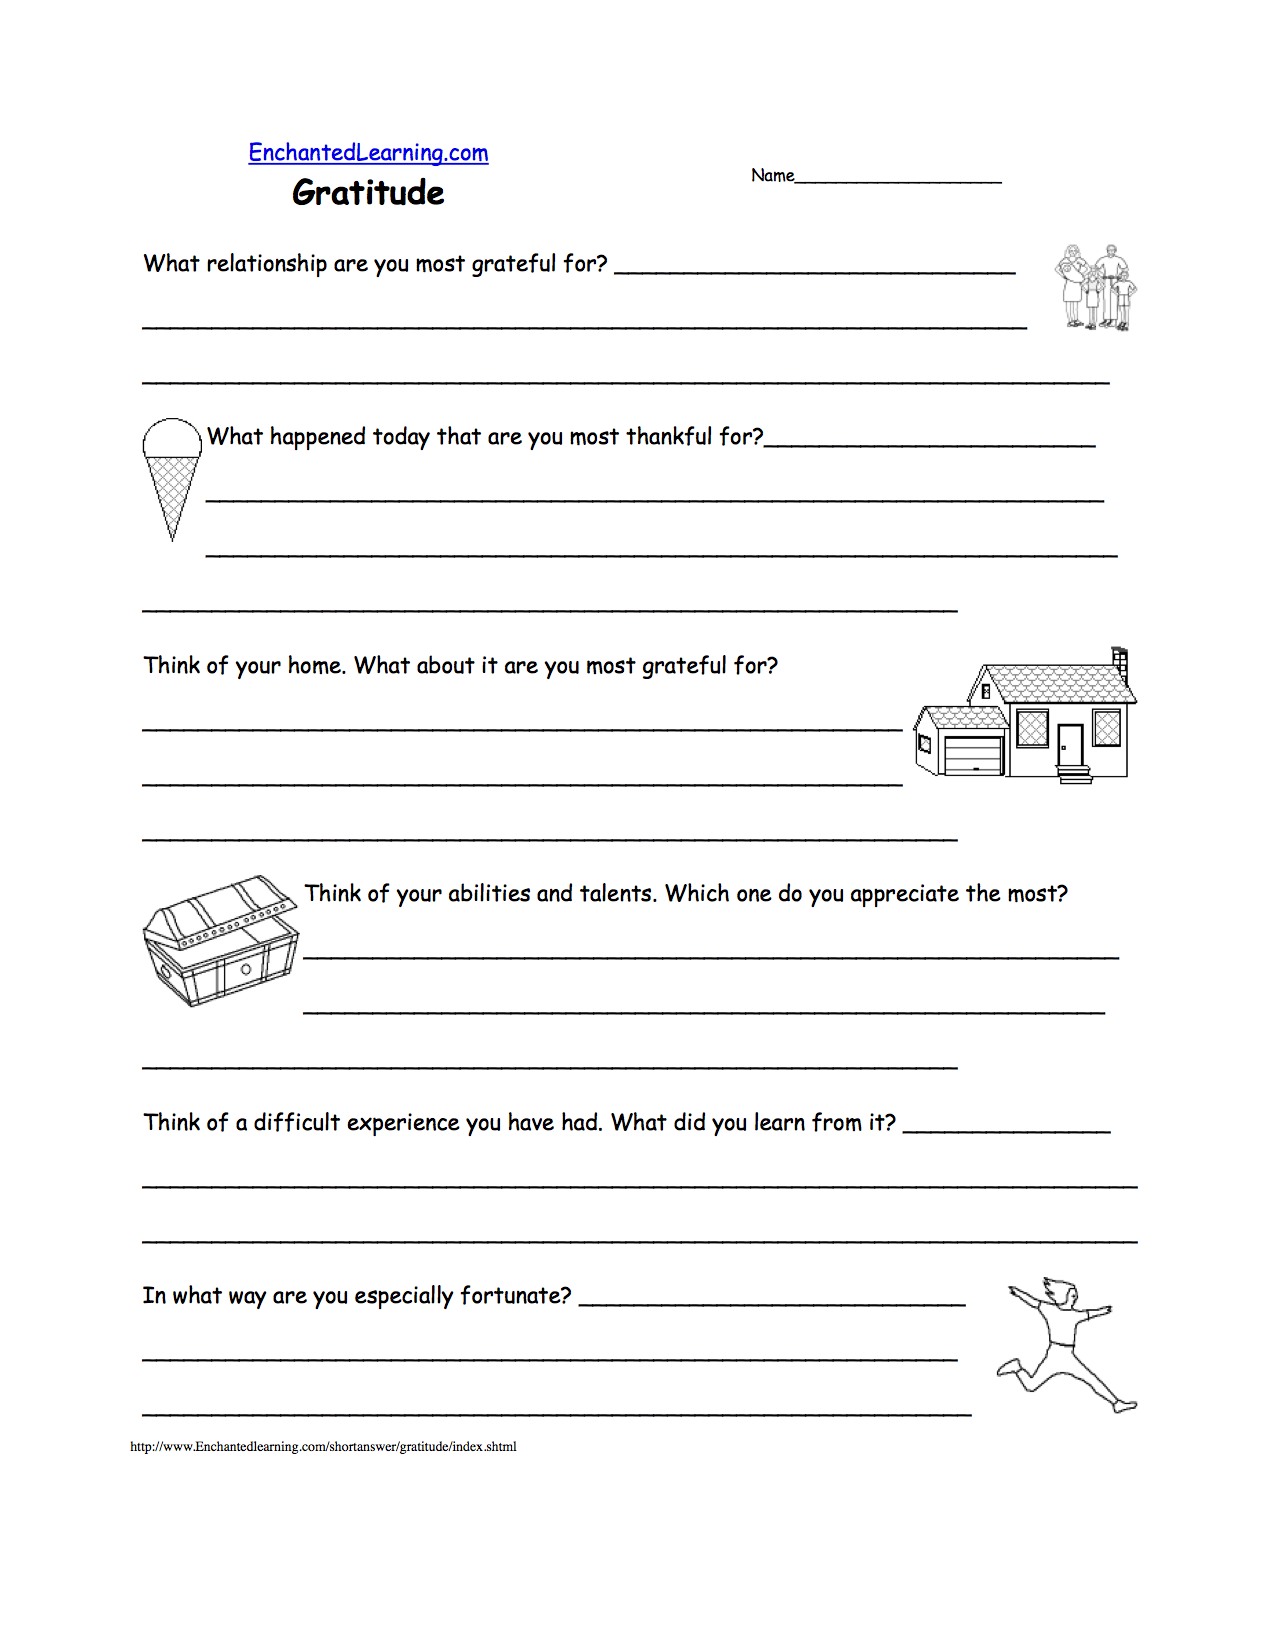 worksheet Emotions Worksheet feelings and emotions at enchantedlearning com thanksgiving